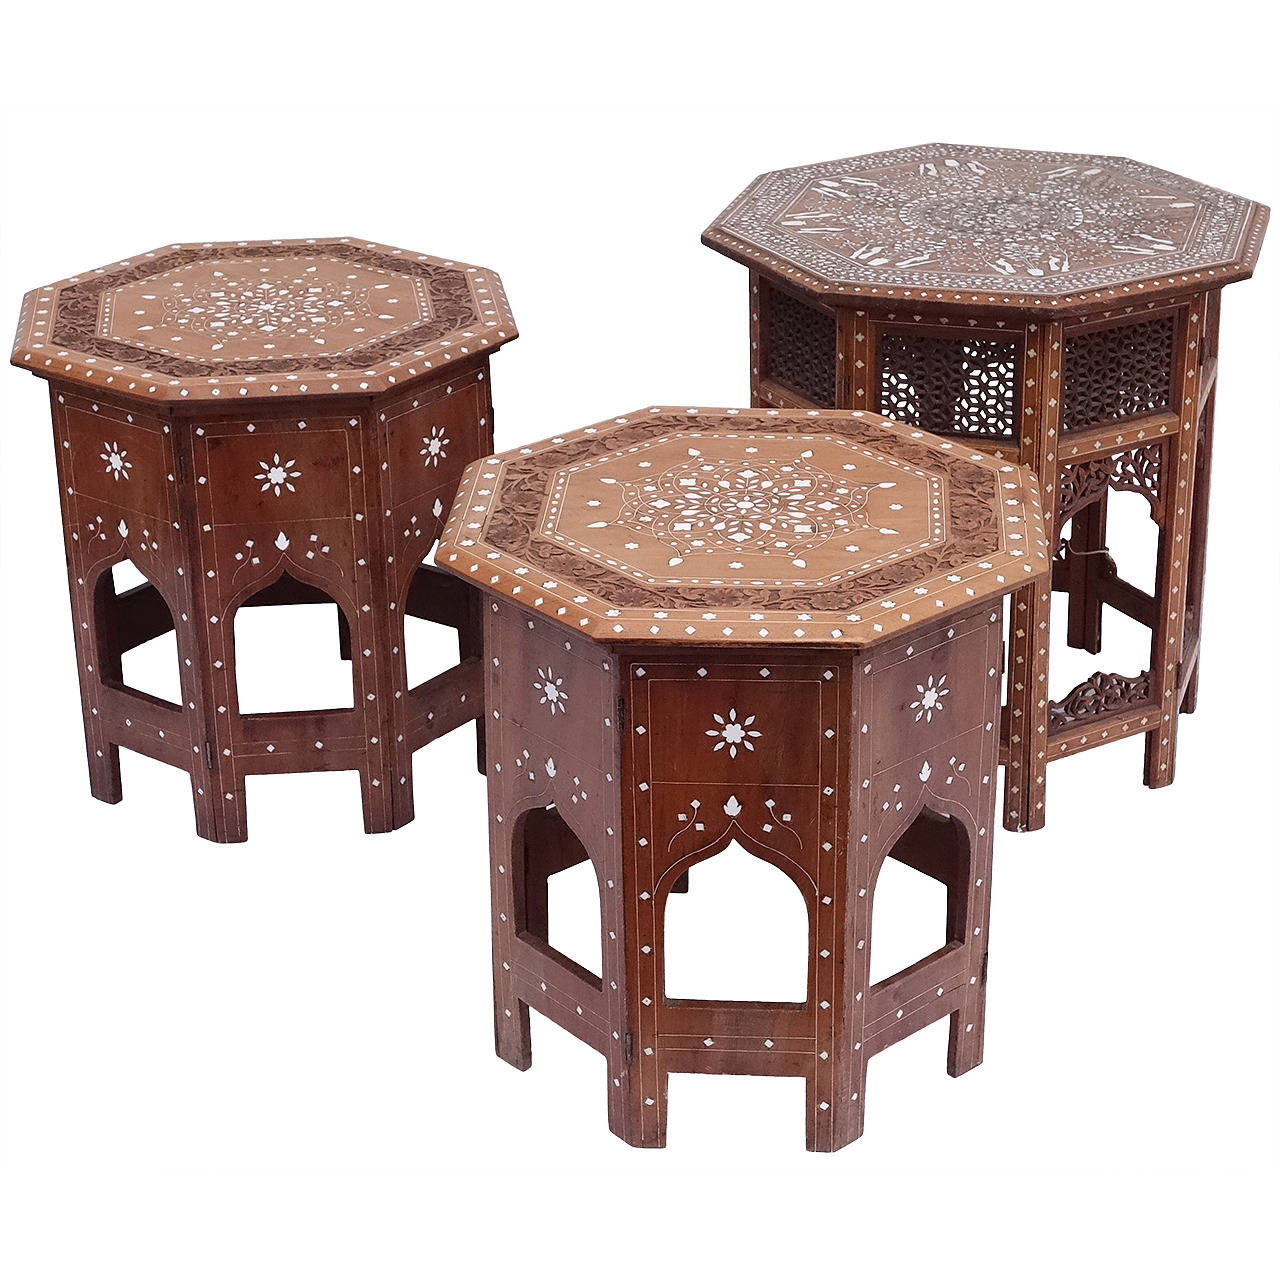 Kashmiri Inlaid Tables For Sale At 1stdibs